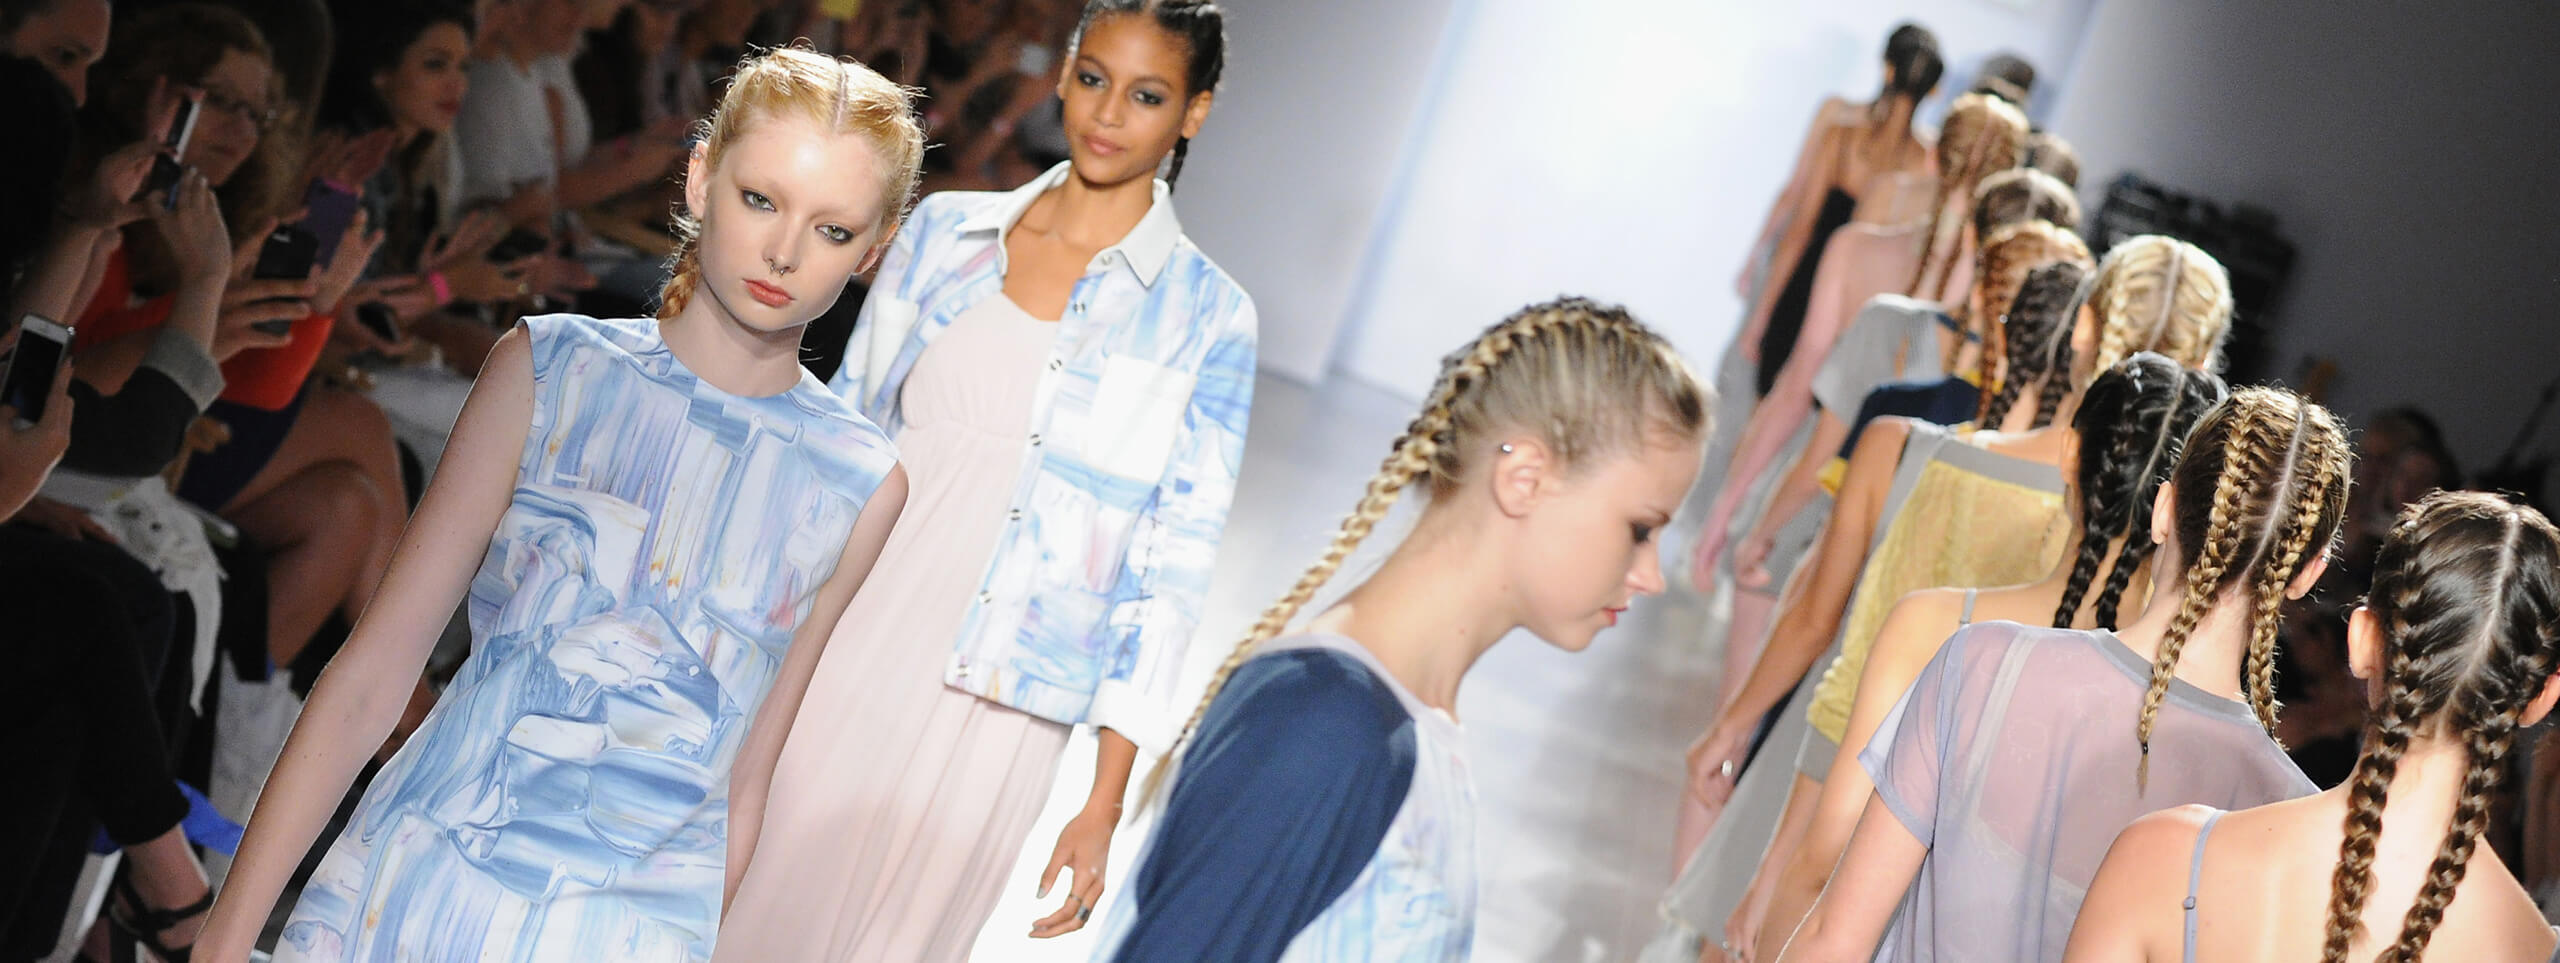 Models walk on a catwalk with braided hairstyle